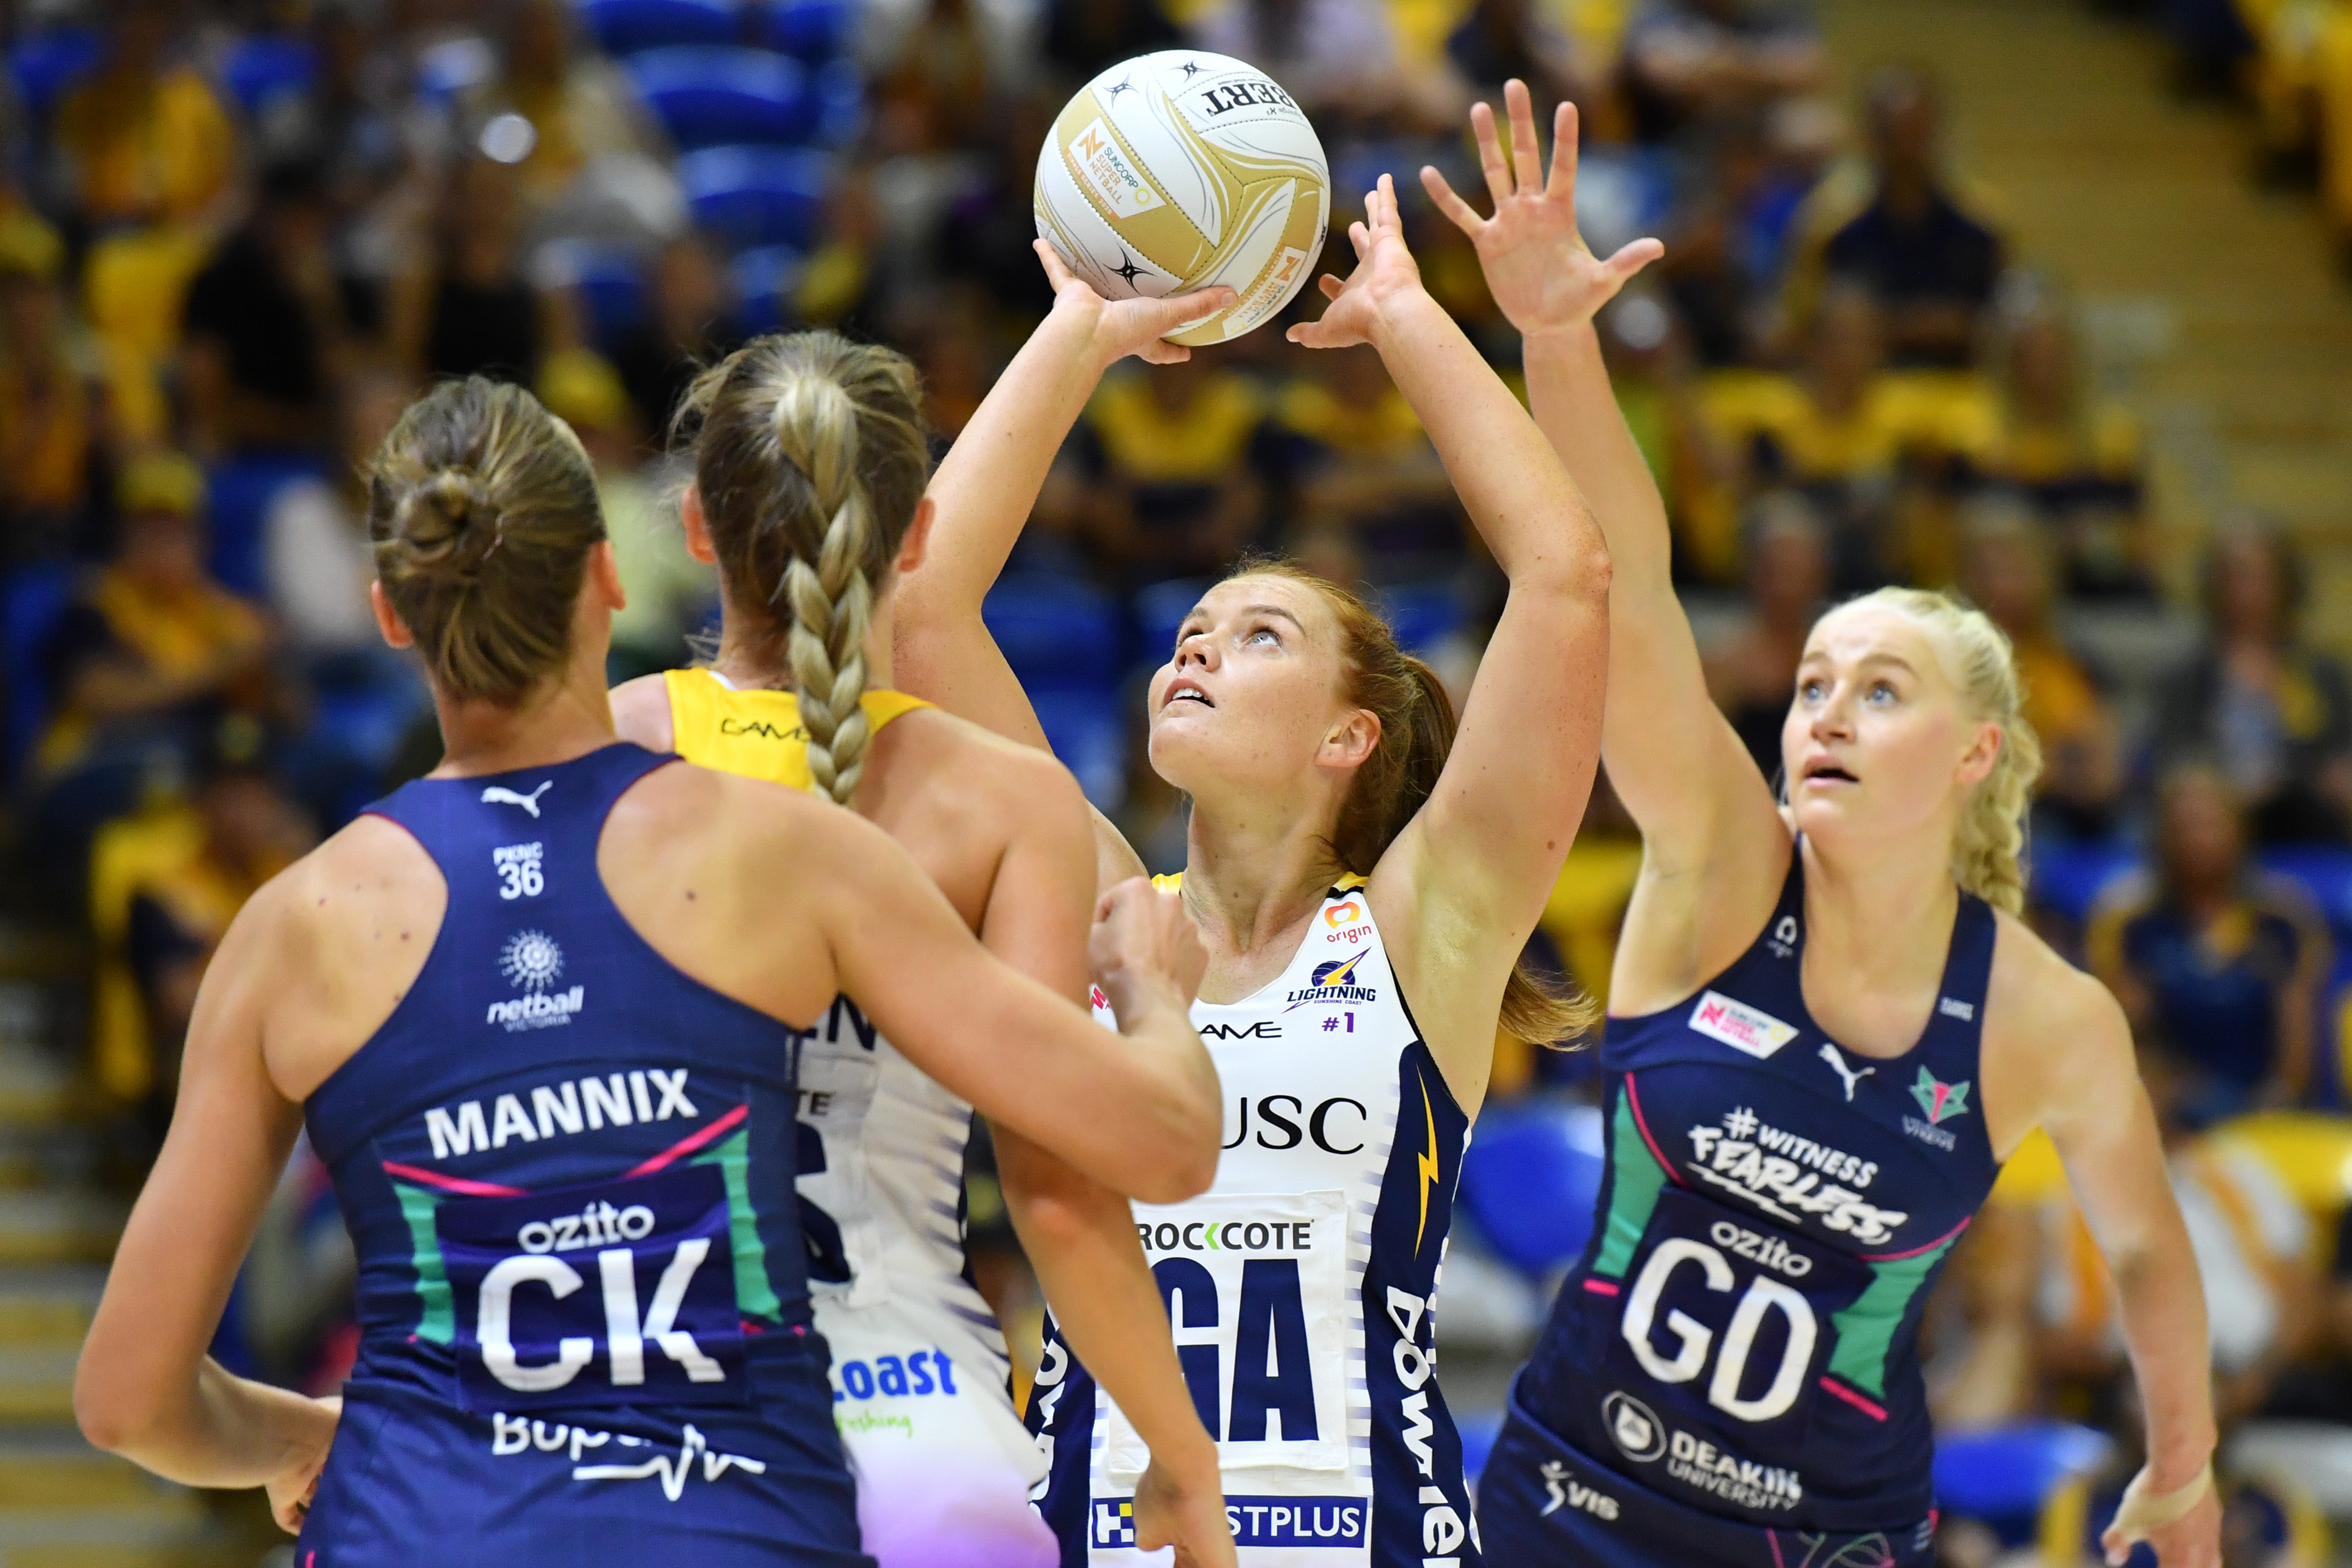 Stephanie Wood of the Lightning shoots a goal during the Major Semi-Final Super Netball match between the Melbourne Vixens and the Sunshine Coast Lightning at USC Stadium on the Sunshine Coast, Saturday, October 3, 2020.